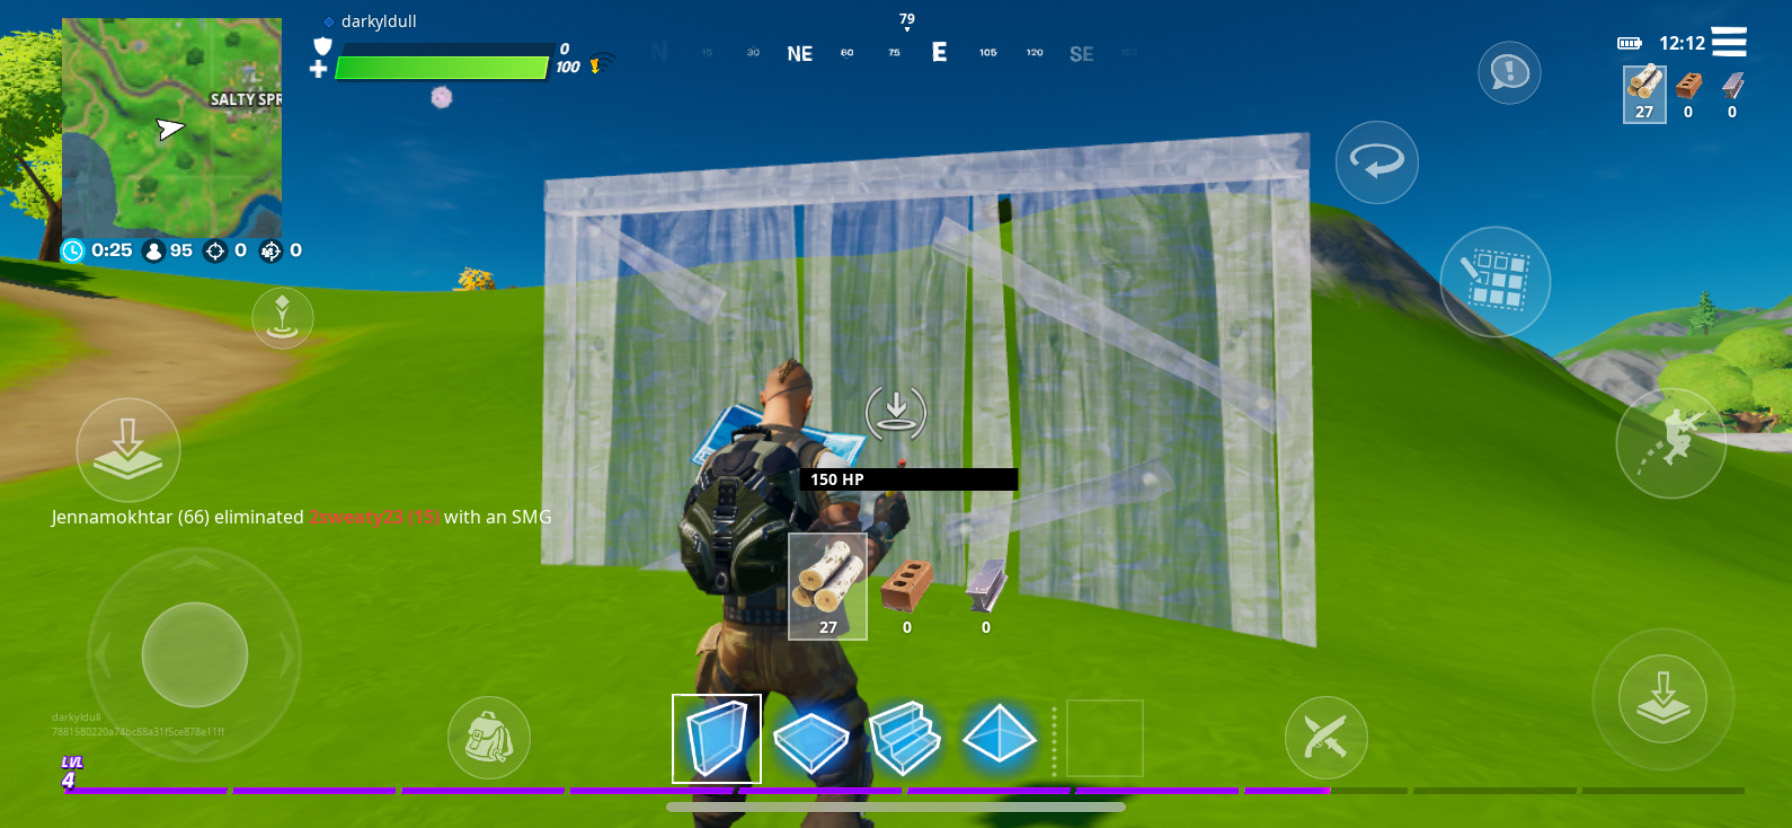 Fortnite Mobile for Android – How to Build Powerful and Effective Structures